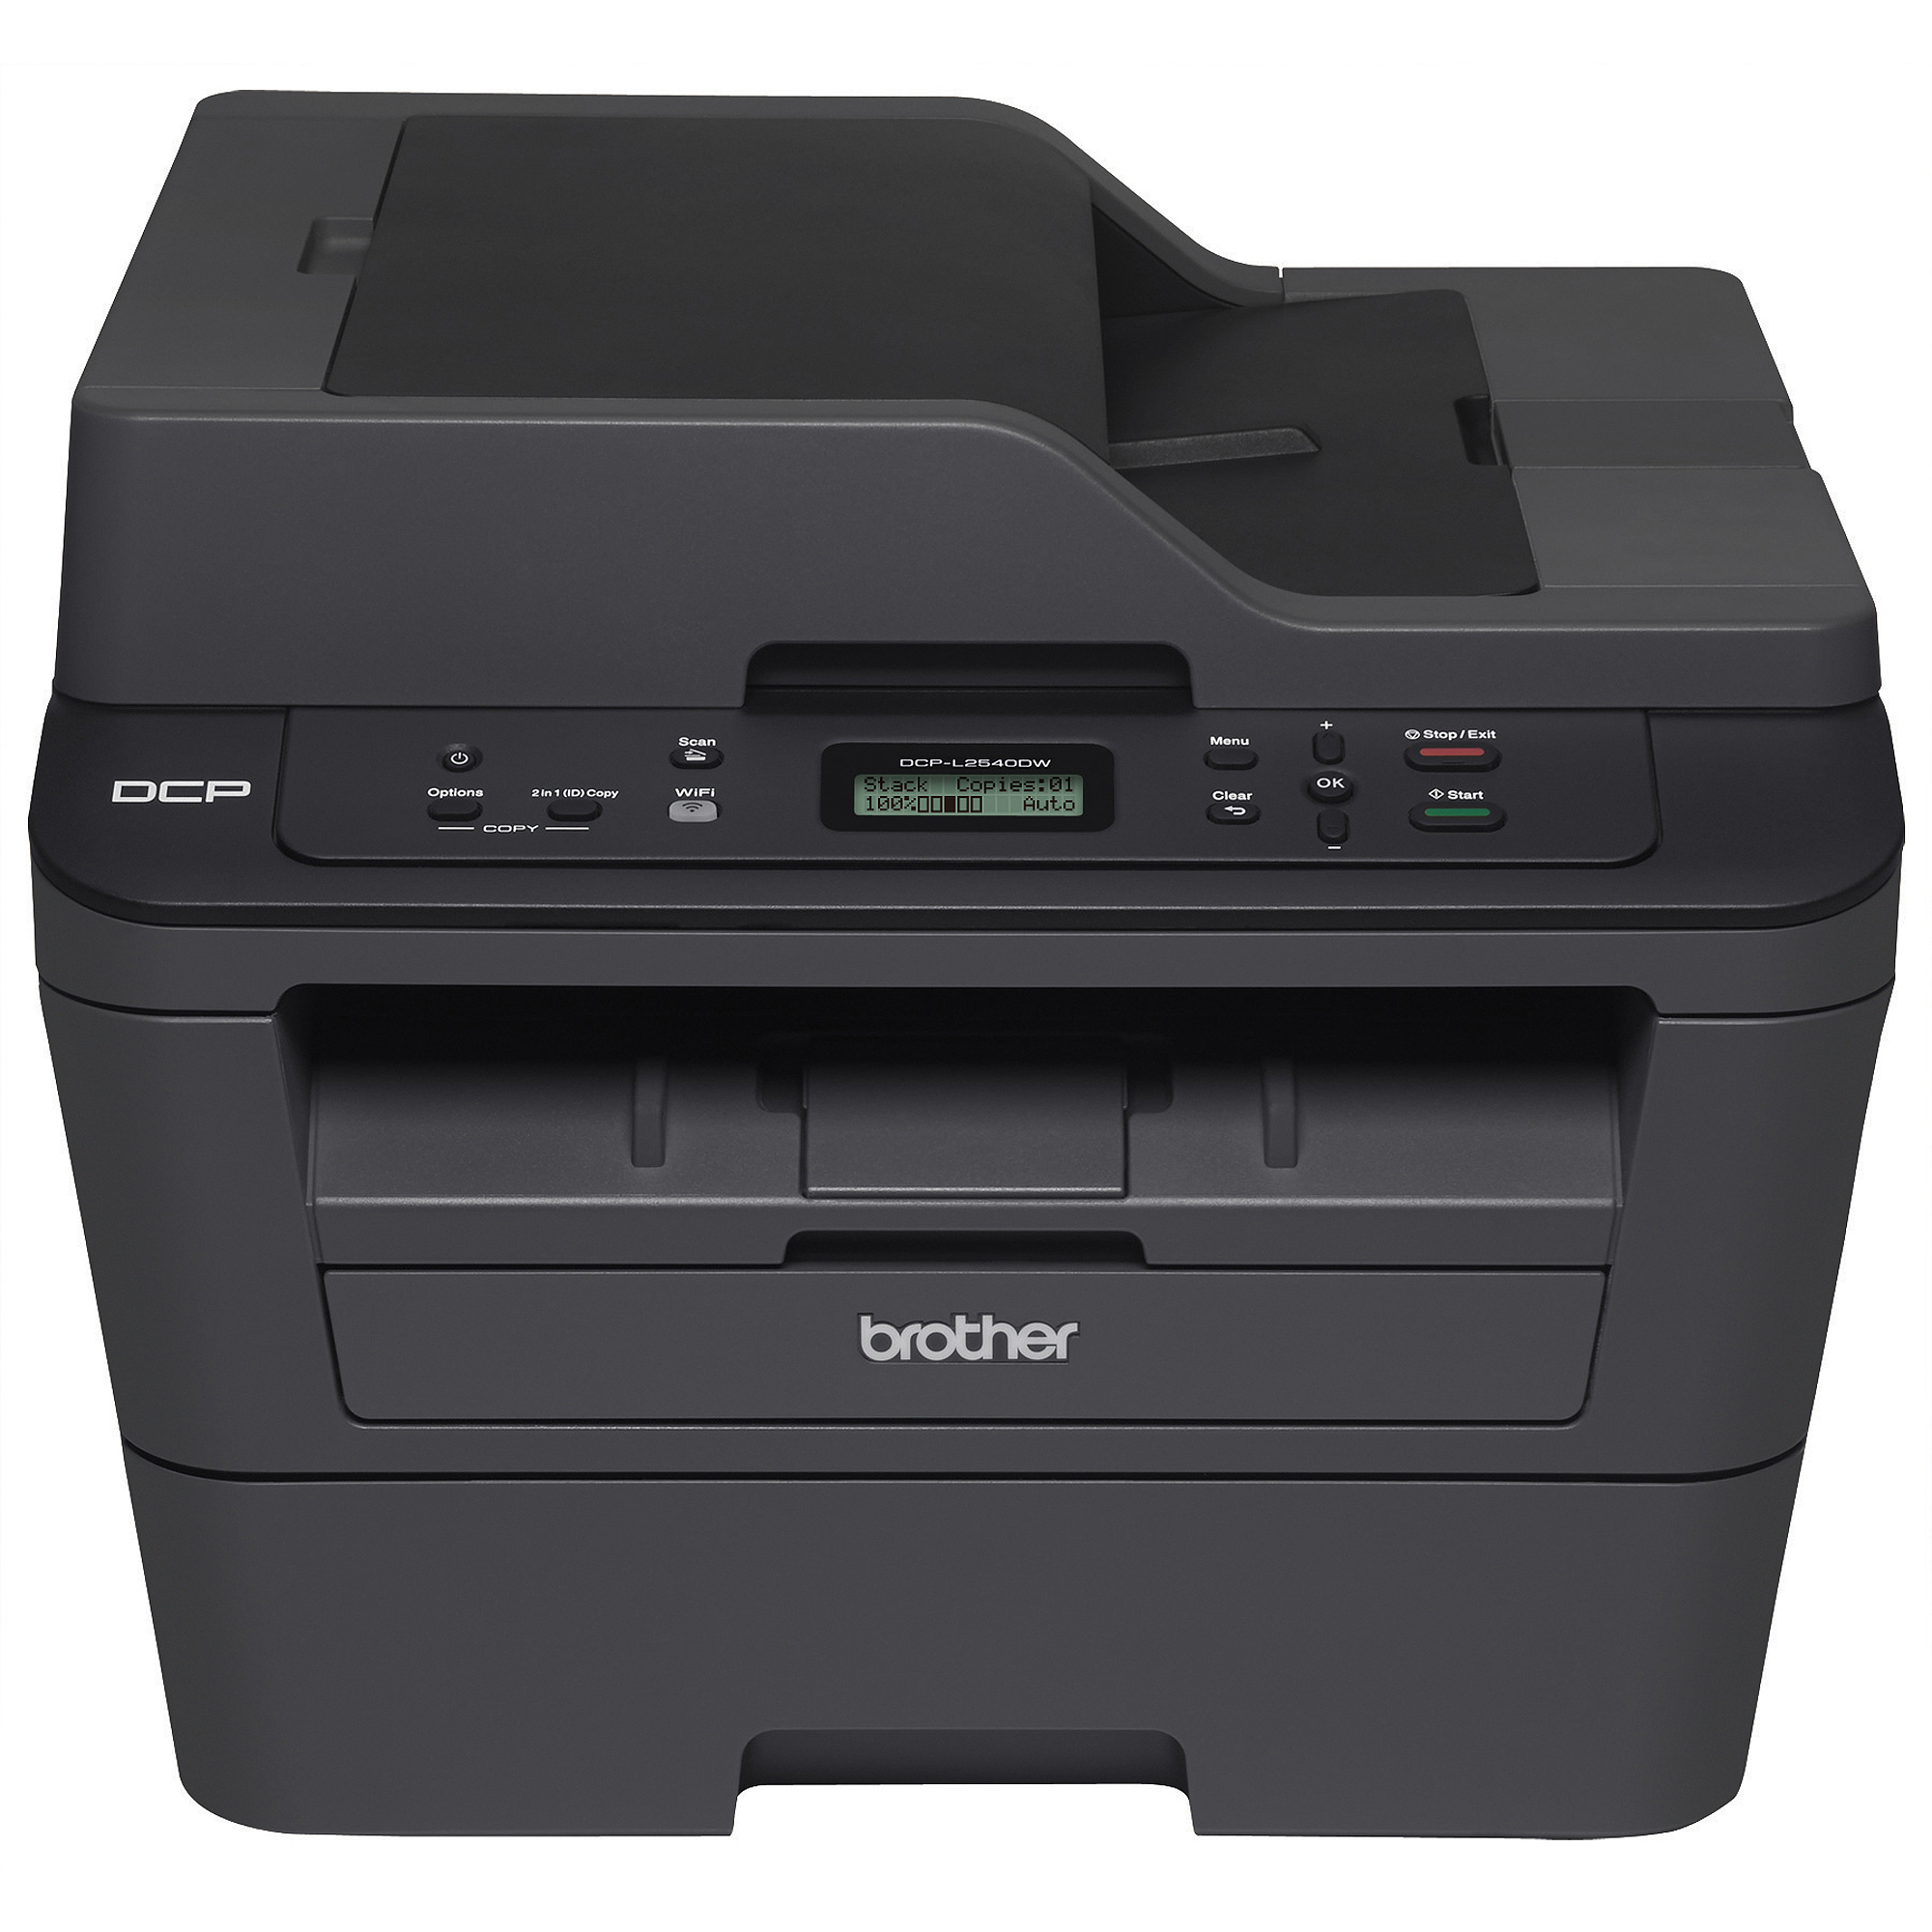 Brother DCP-L2540DW Laser Multi-Function Printer/Copier/Scanner